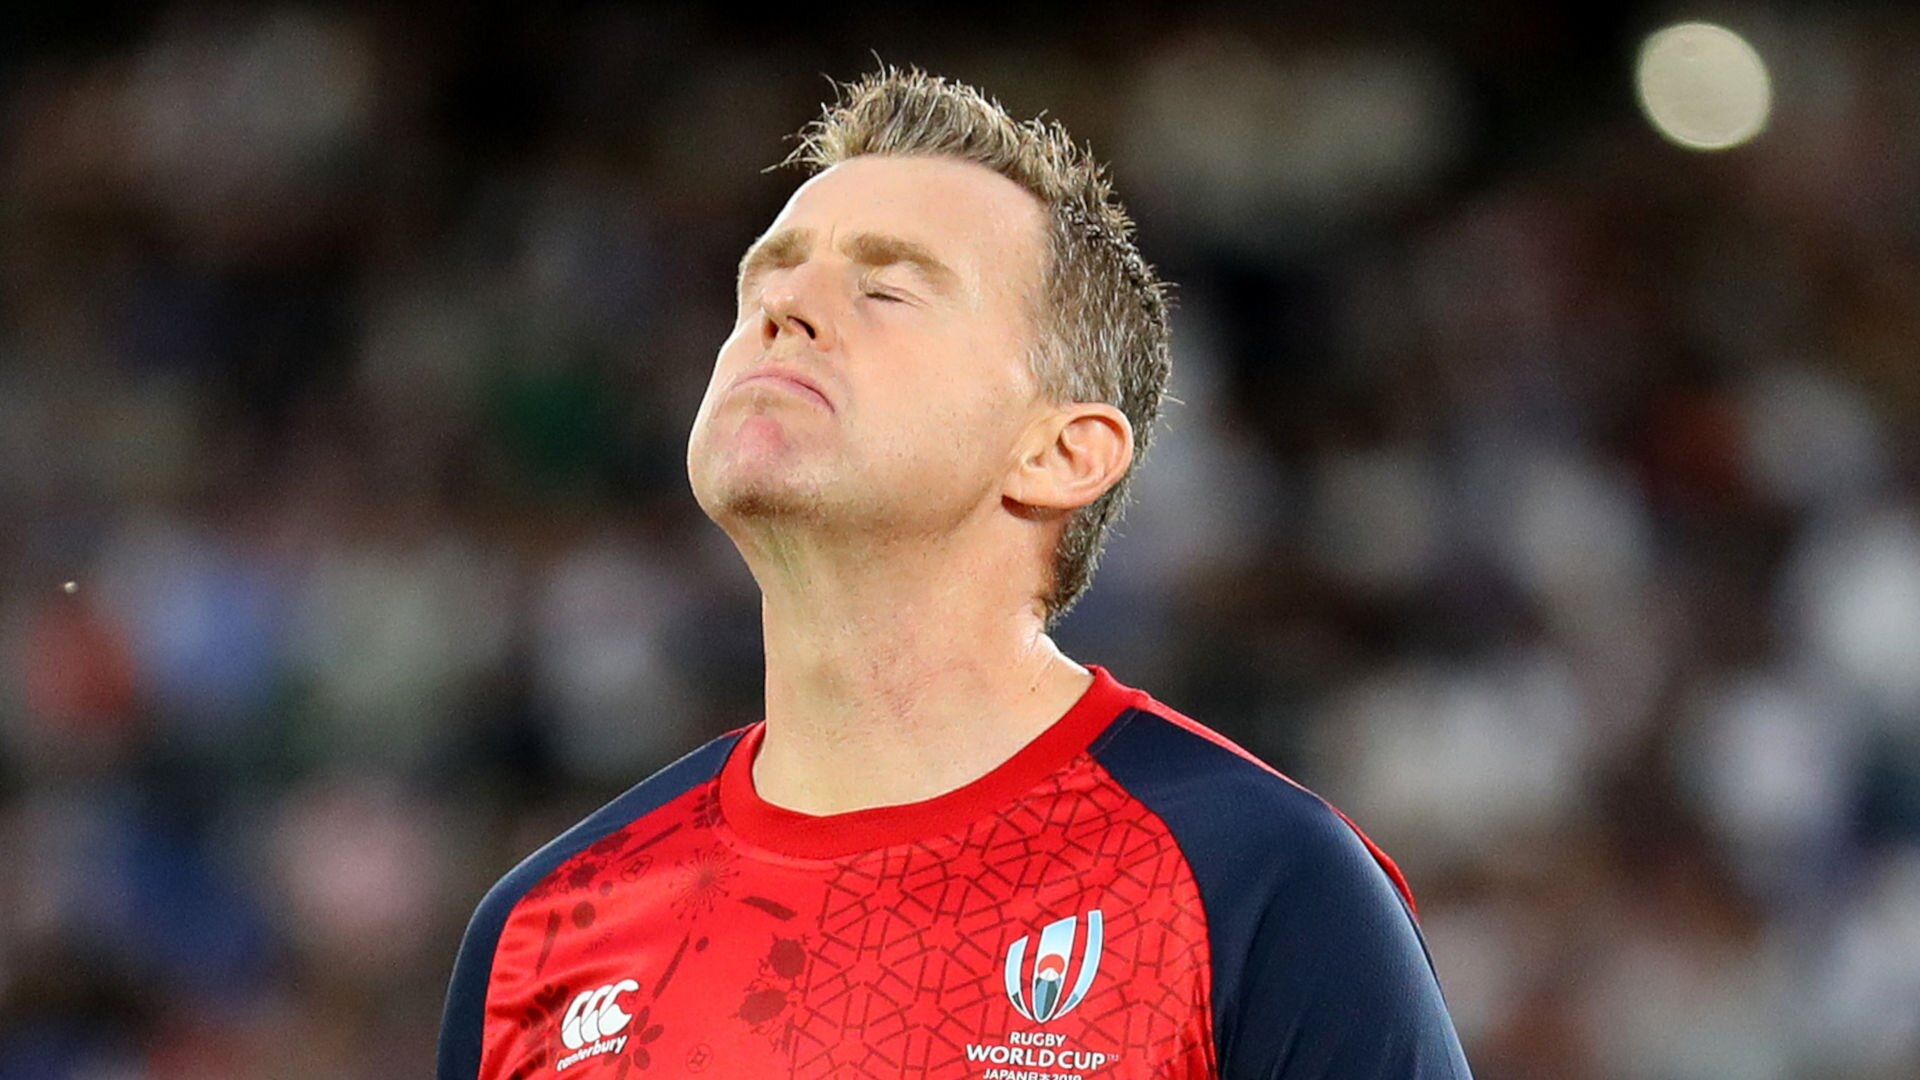 Nigel Owens makes costly mistake on journey to Cork after Pro14 game